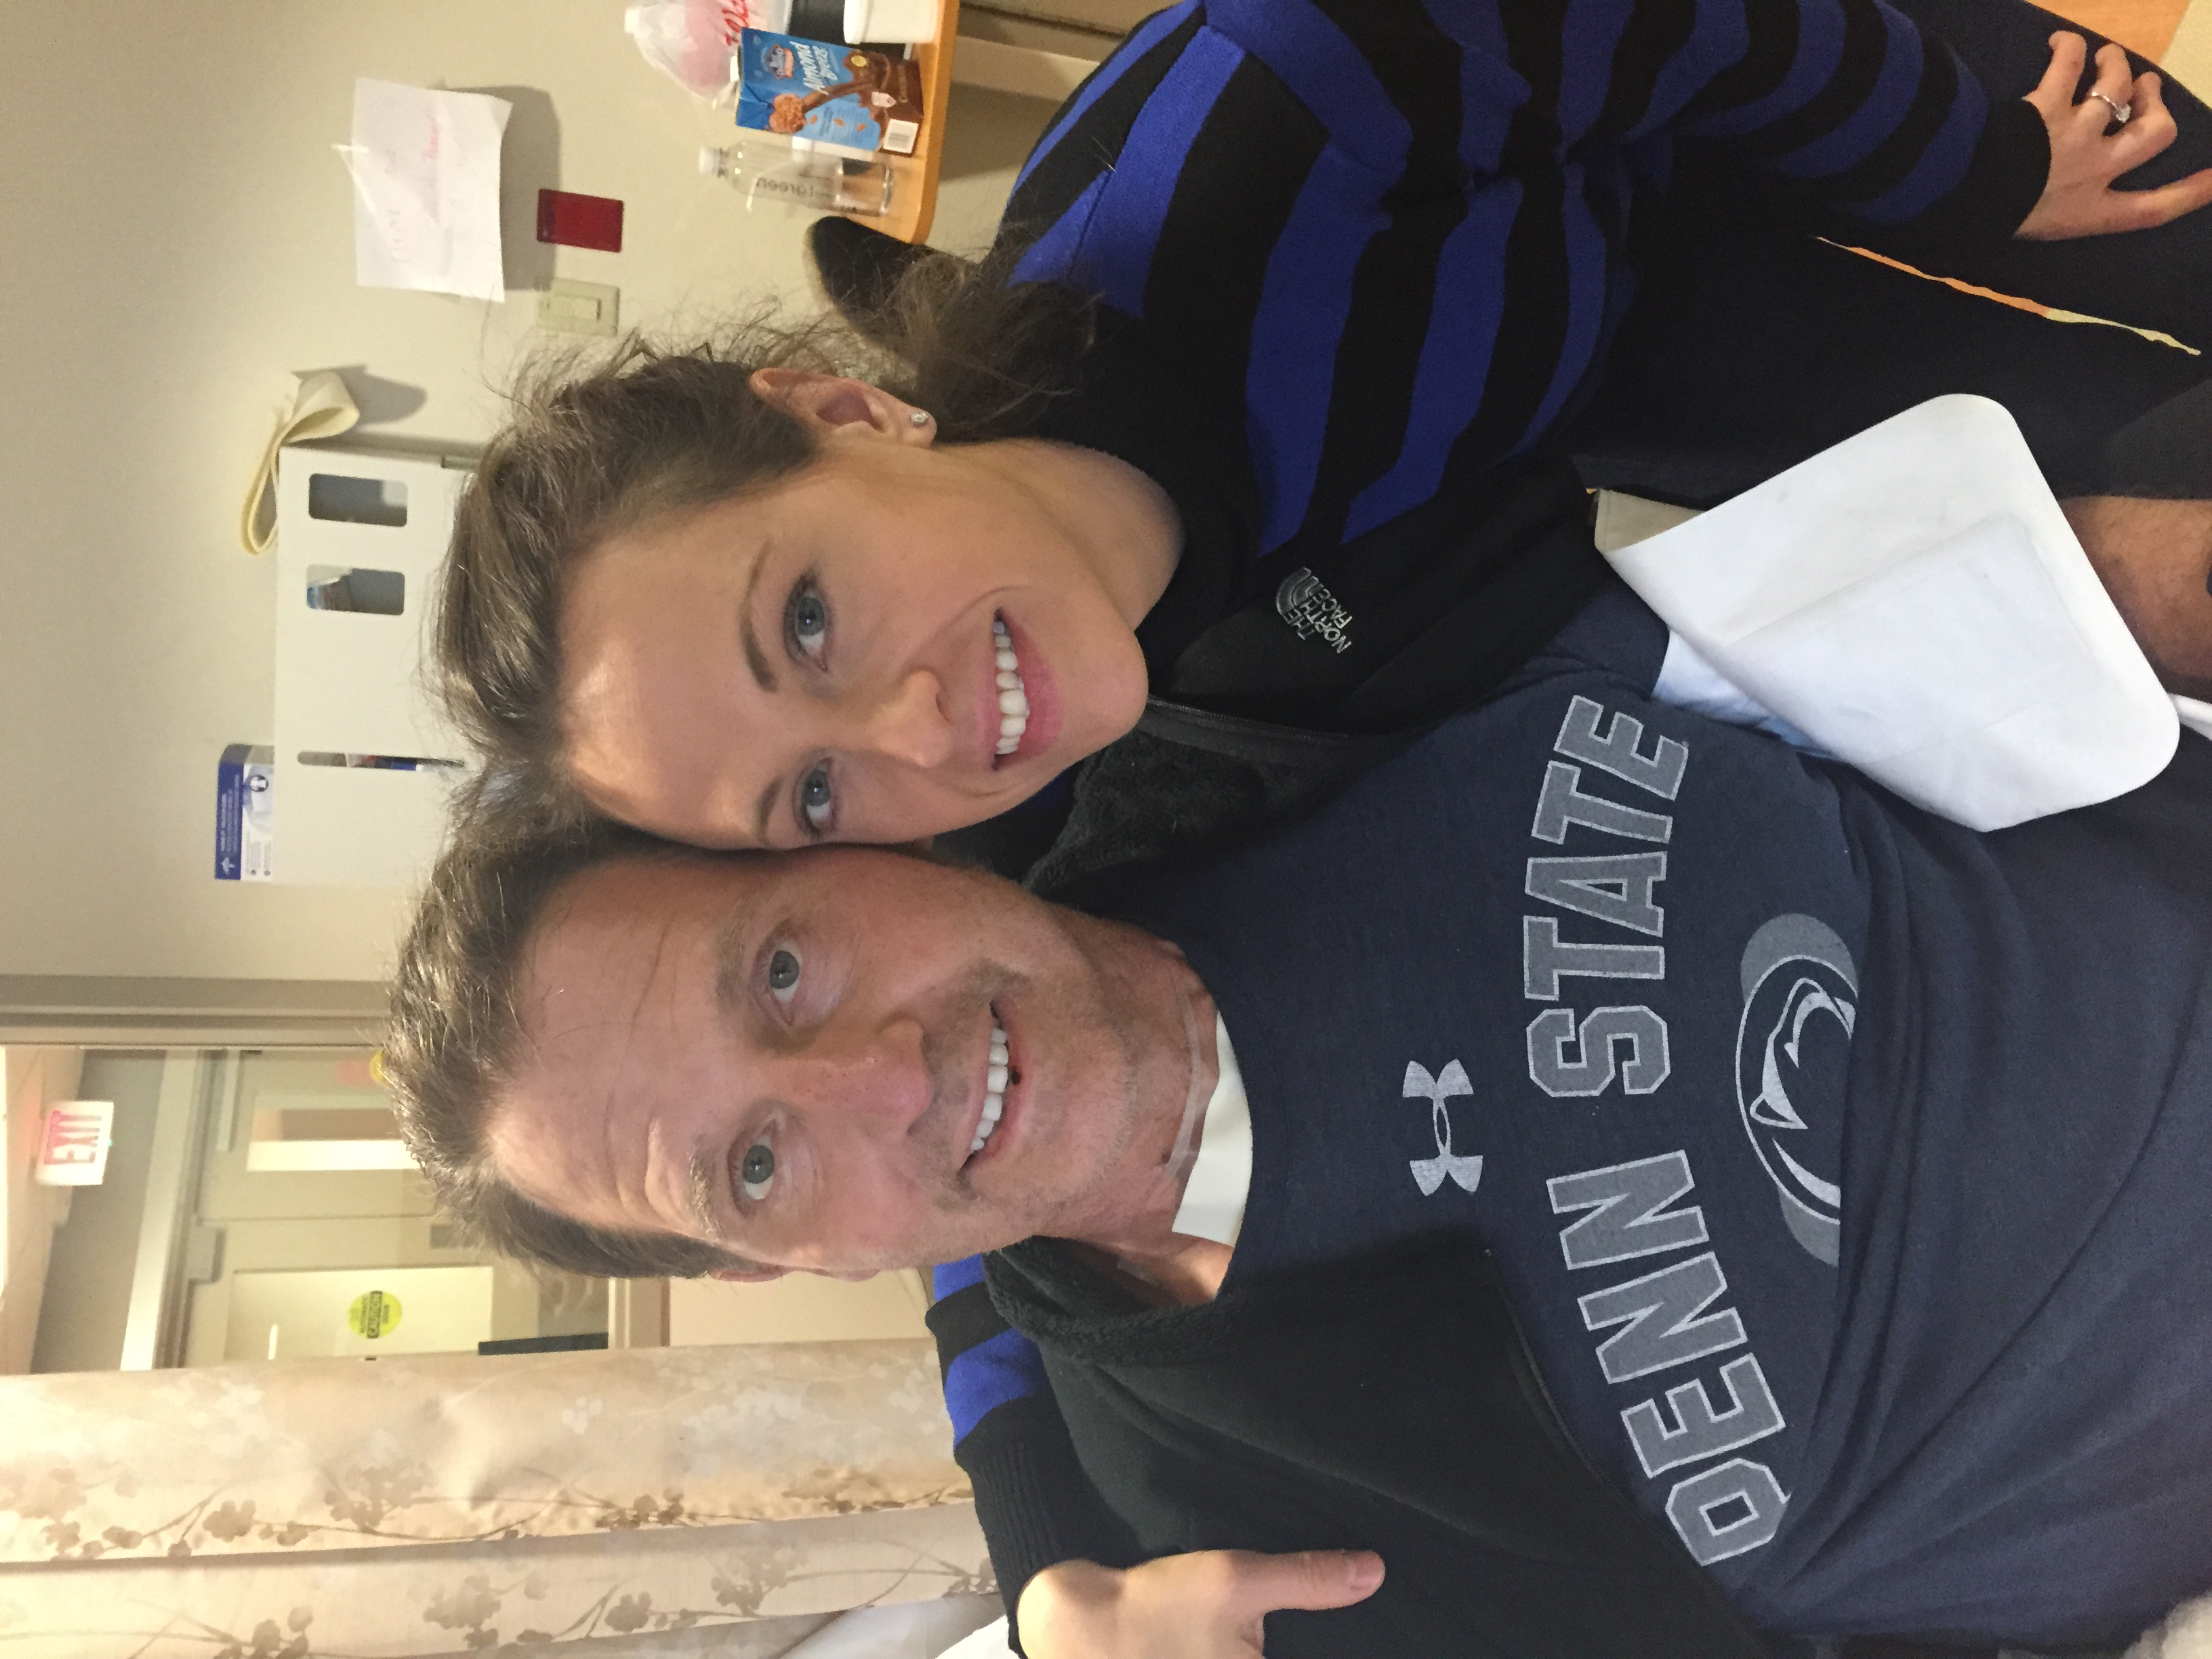 2015-03-01 Jonathan and Jennifer after he has woken up from coma and lost almost 40 pounds at 180 lb